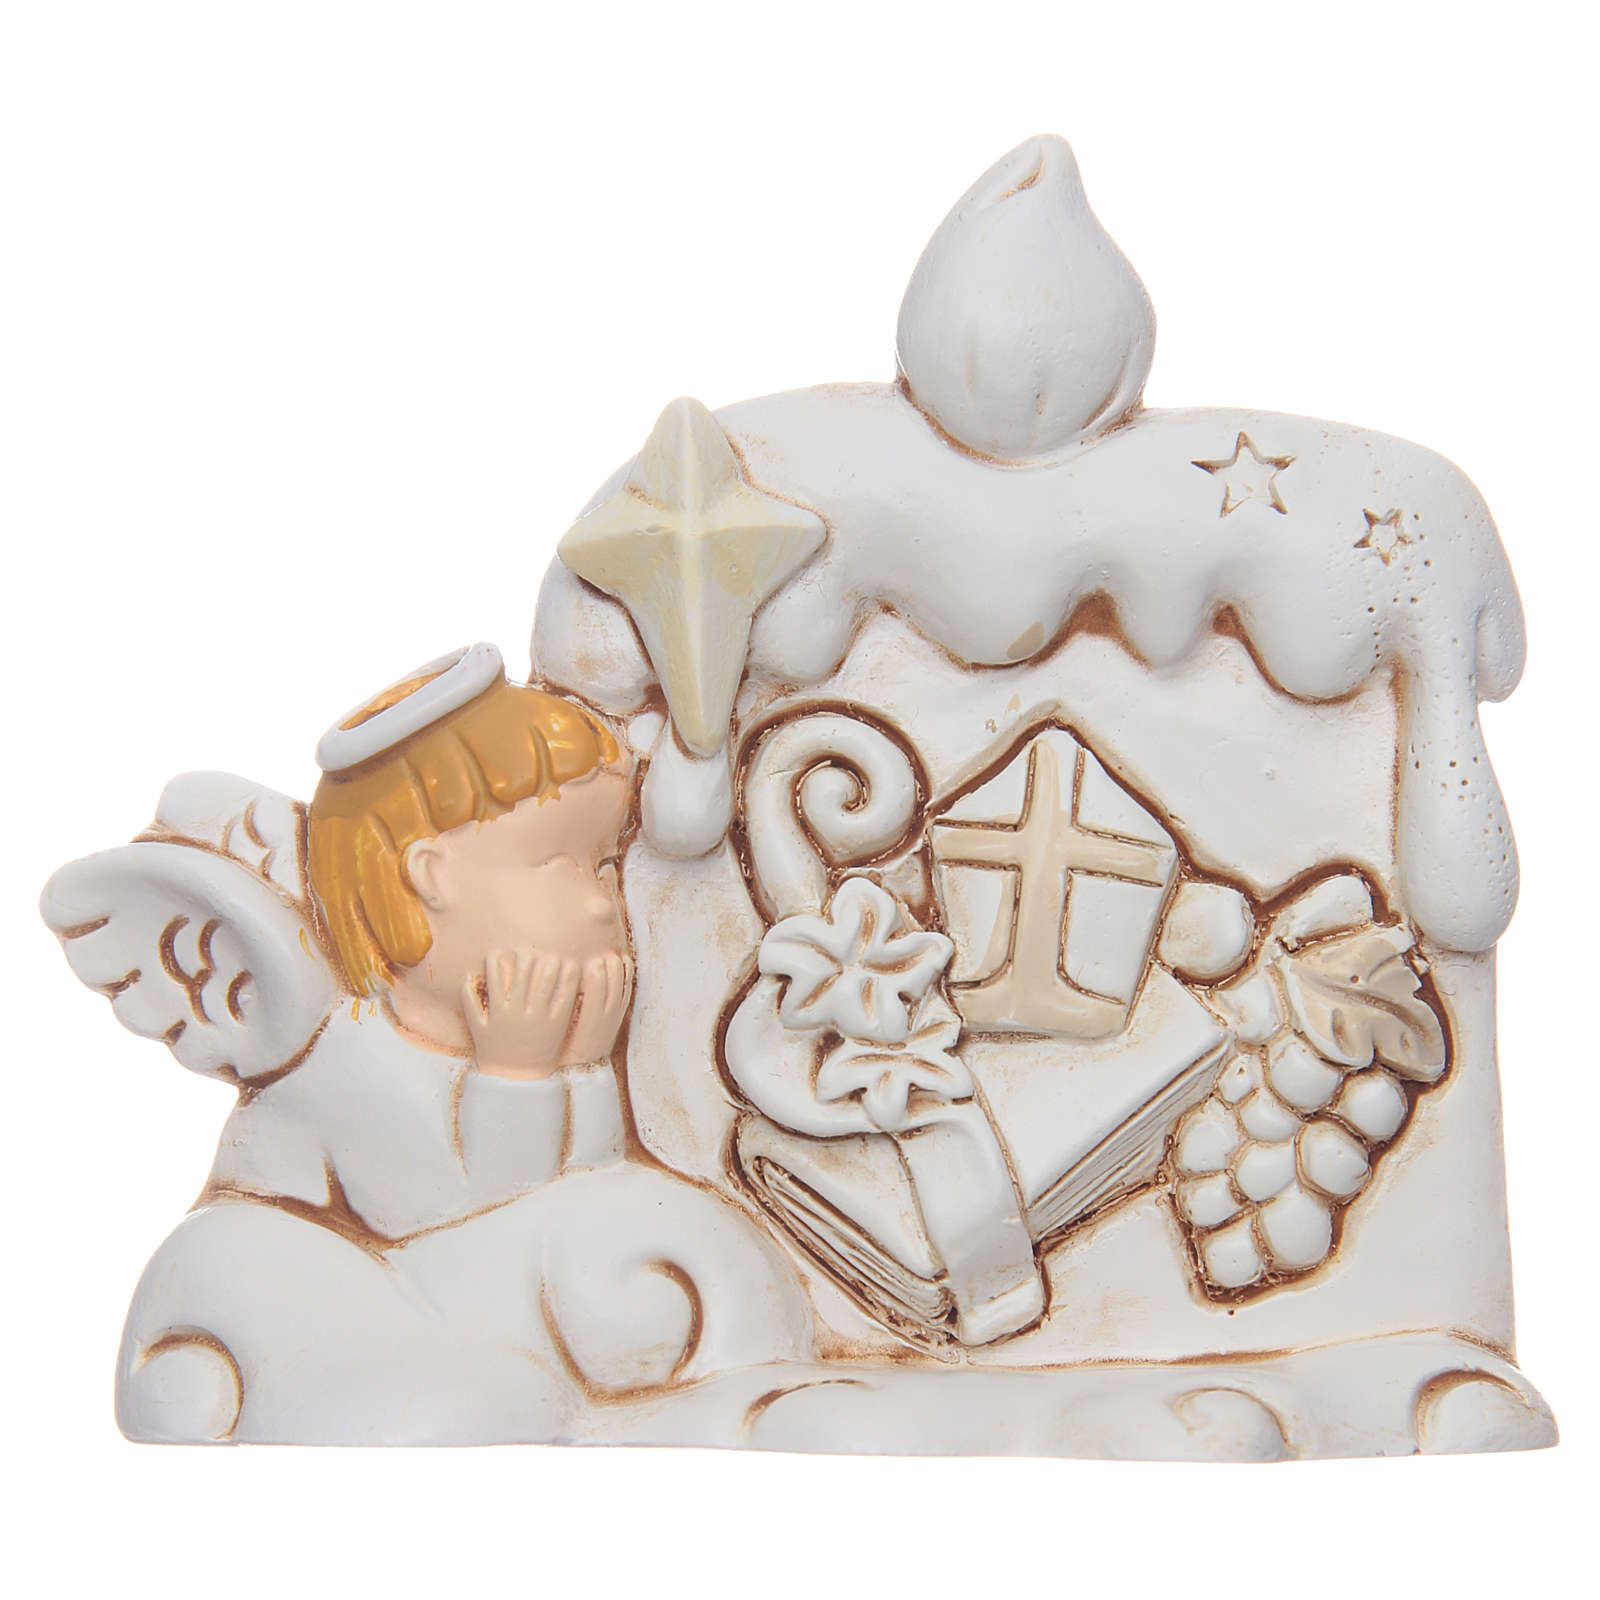 Confirmation bombonniere angel candle in resin 3